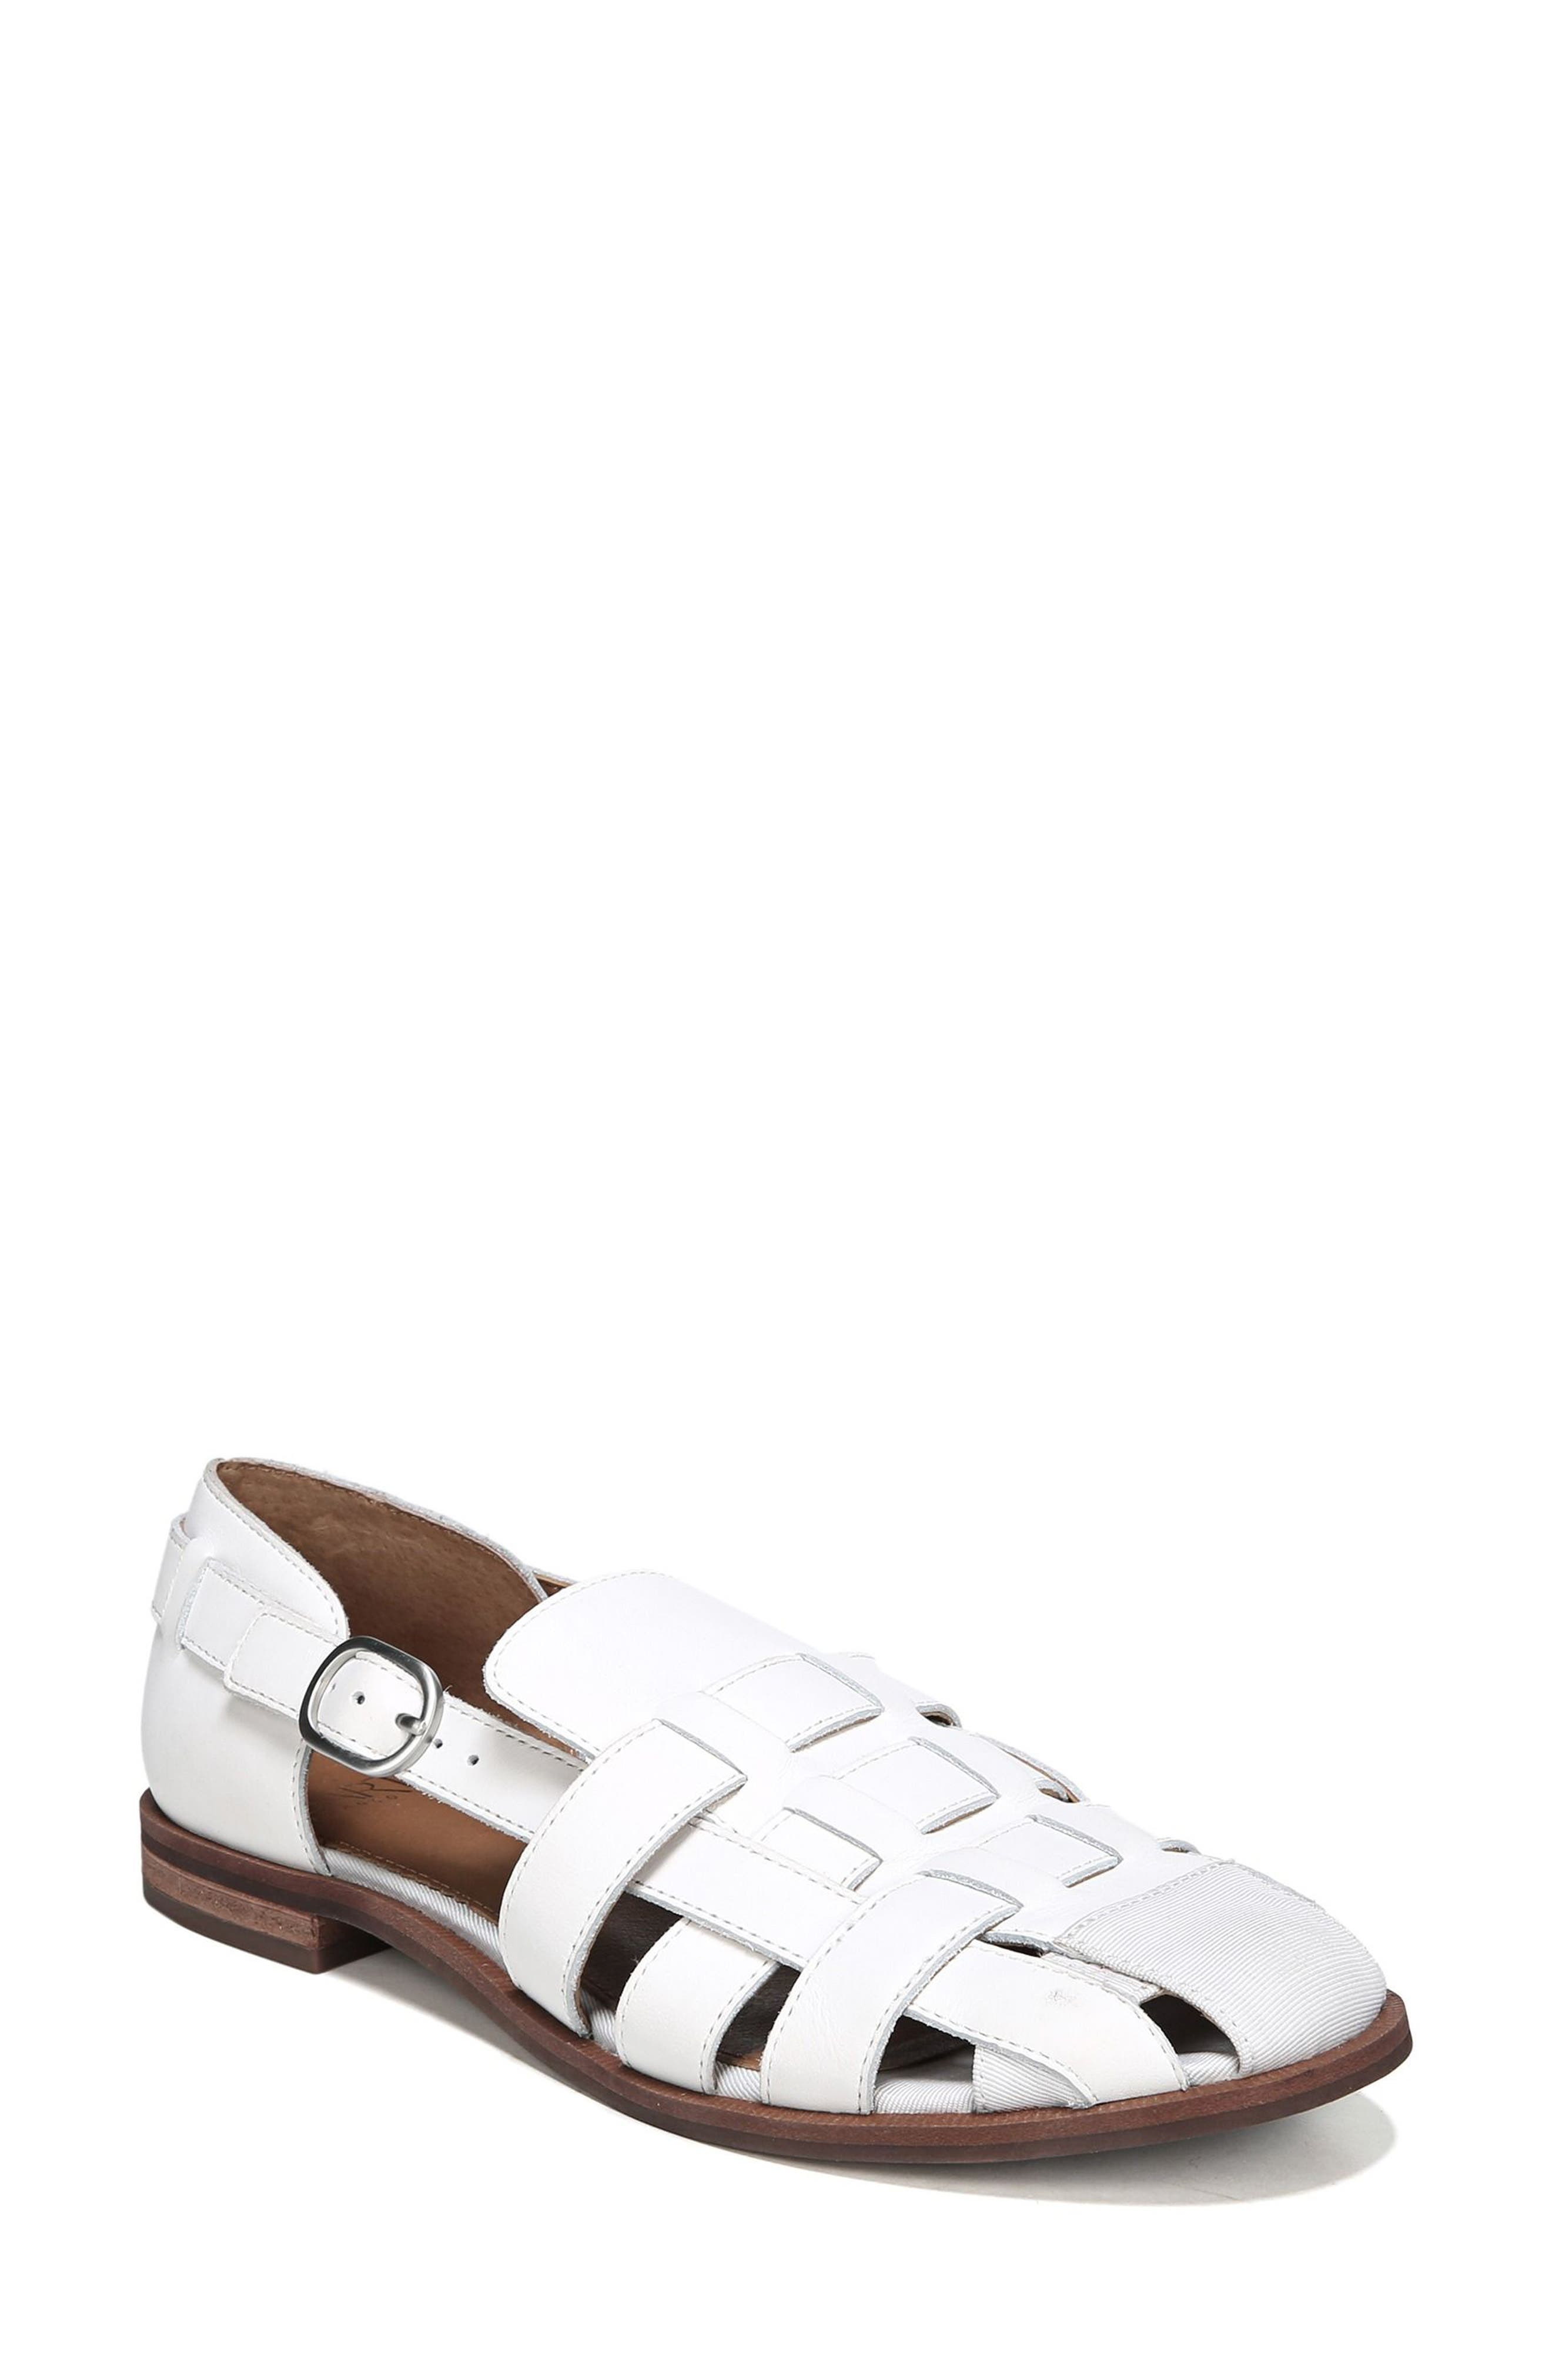 Lulu Fisherman Sandal,                         Main,                         color, BRIGHT WHITE LEATHER